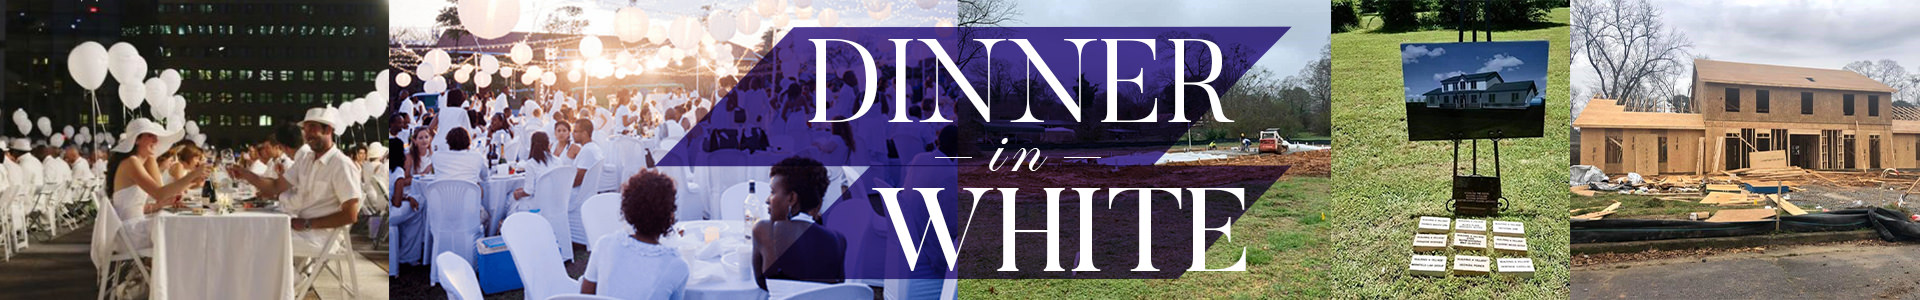 dinner_in_white_main_home_page